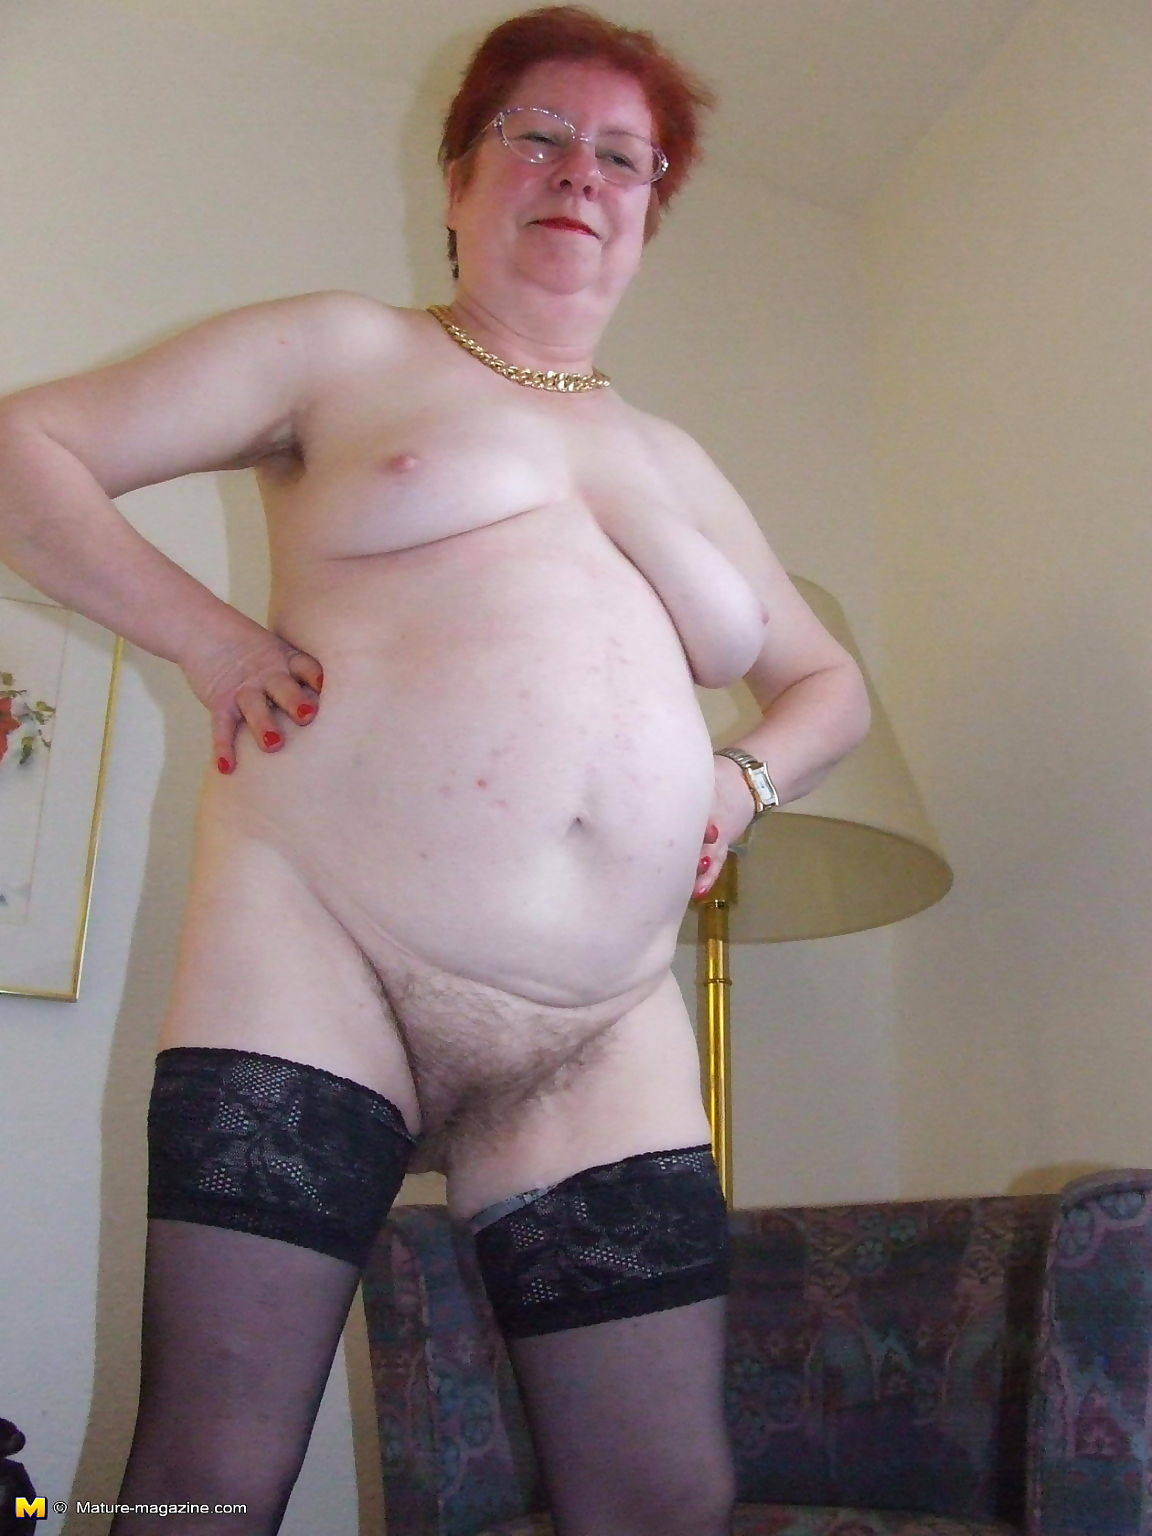 Hairy amateur mom playing with herself - part 413